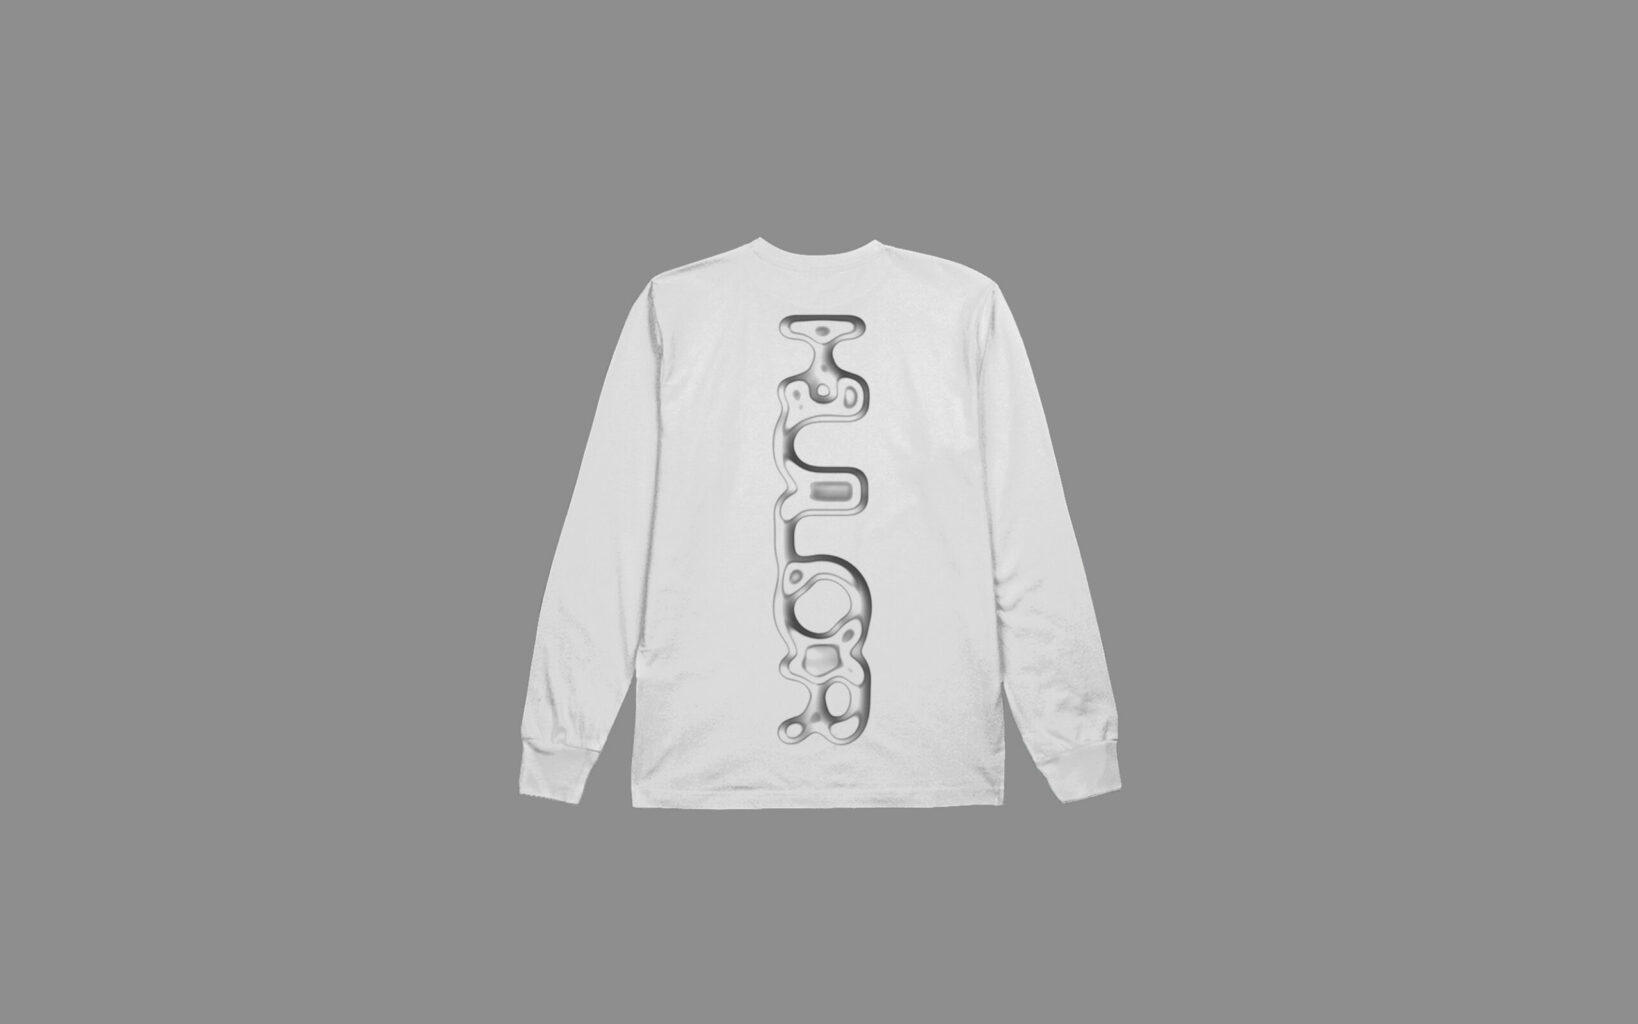 Product category: Apparel